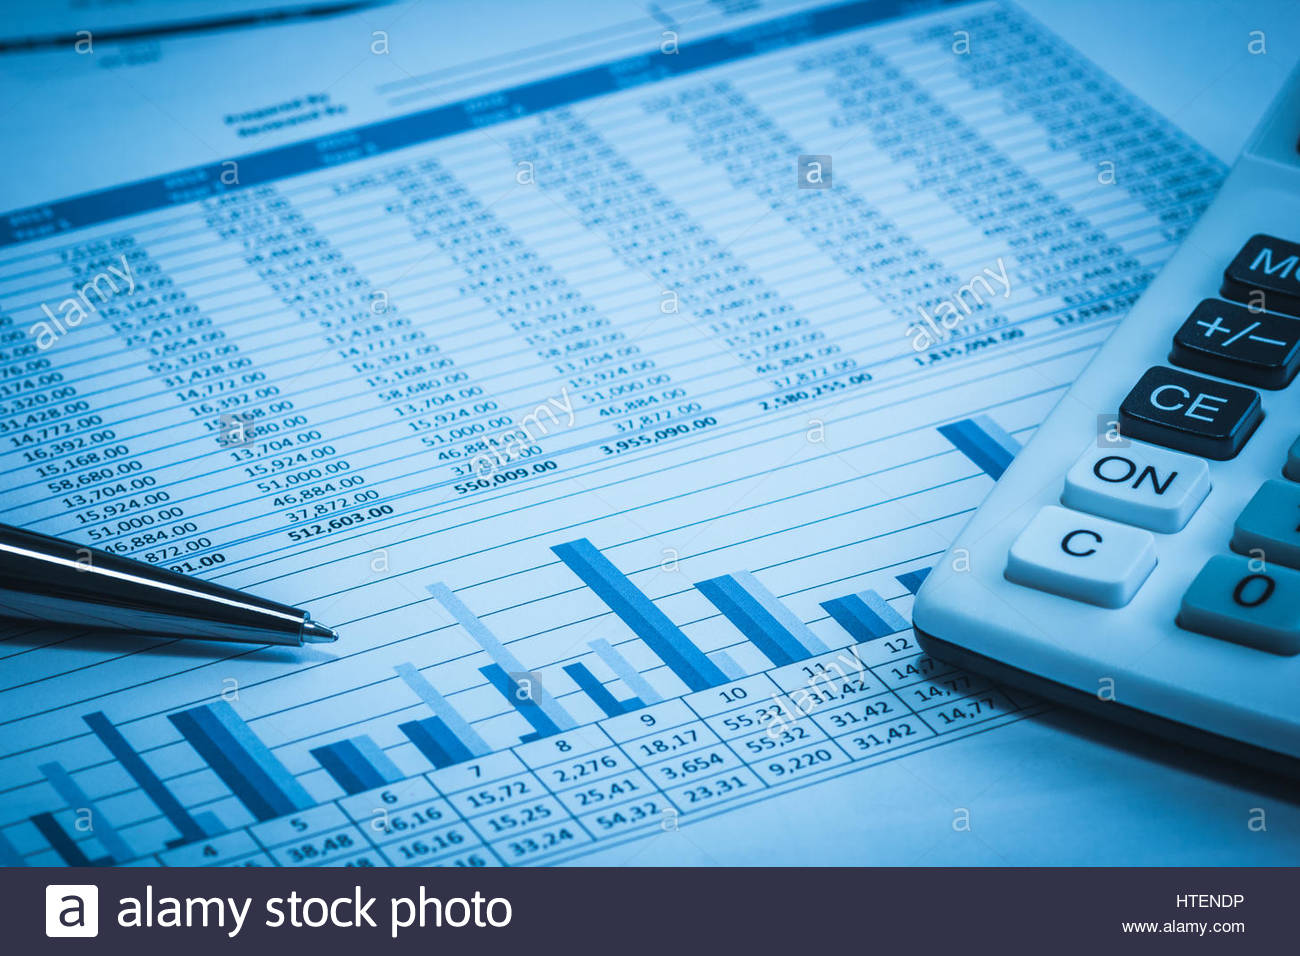 Accounting financial banking stock spreadsheet data with pen and ...